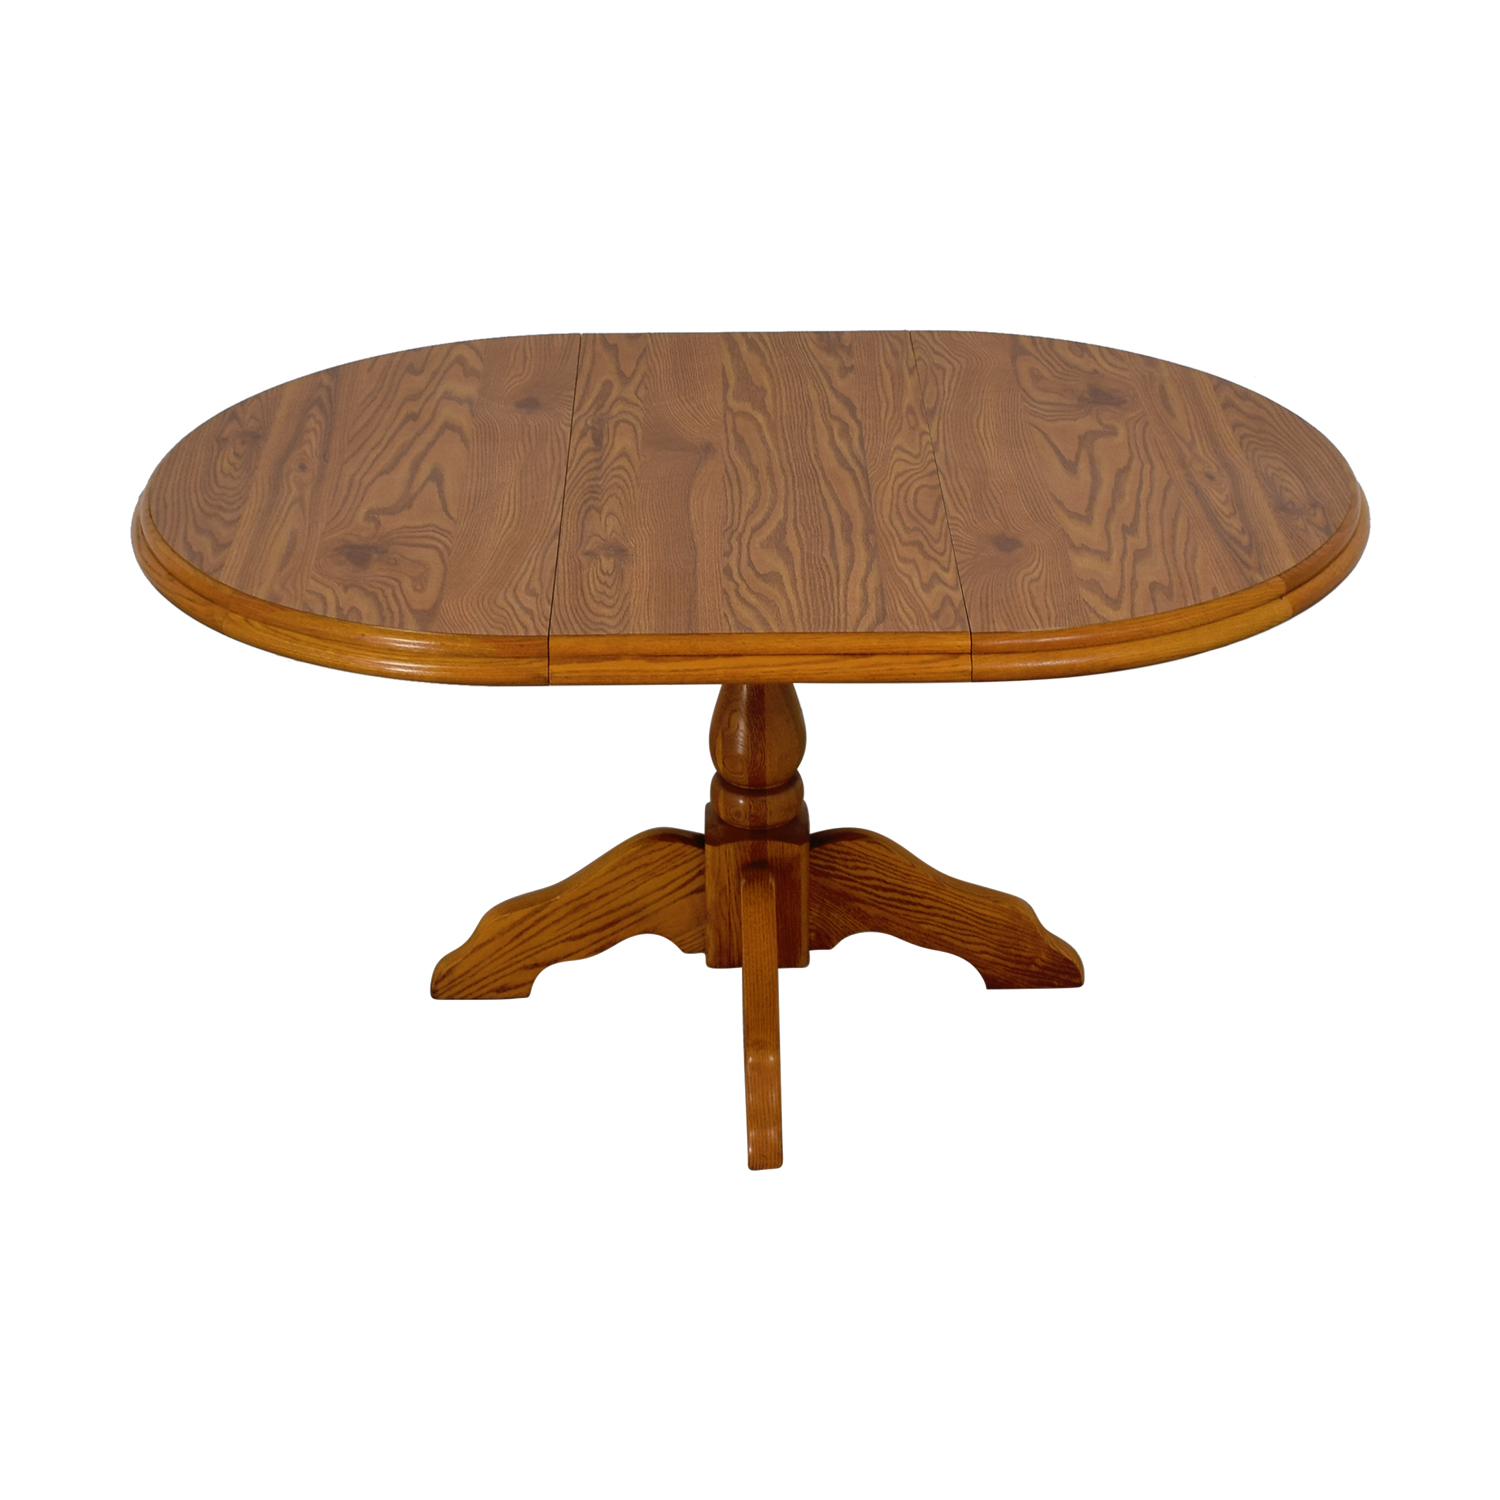 Virginia House Virginia House Round Dining Table with Leaf nyc